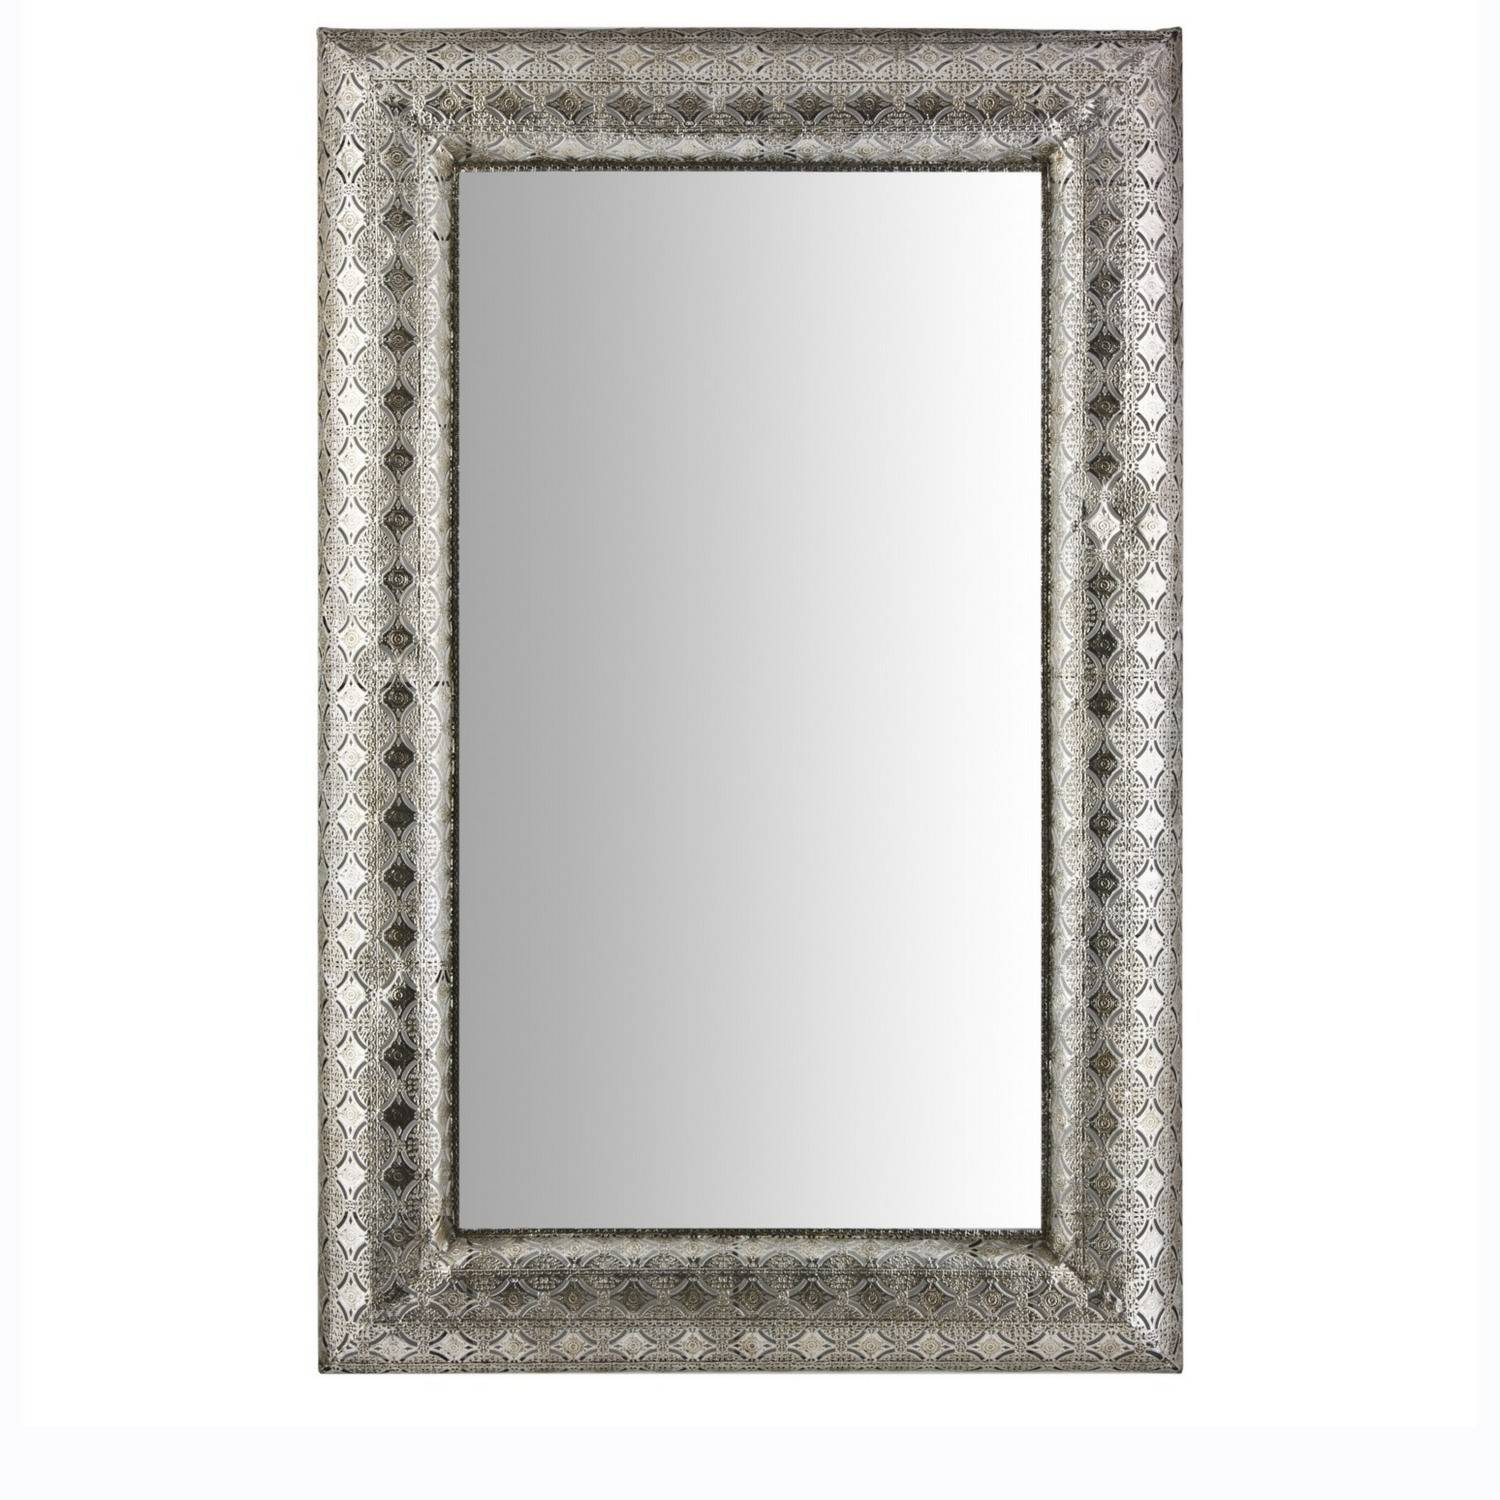 Large Moroccan Mirror throughout Silver Ornate Wall Mirrors (Image 14 of 25)